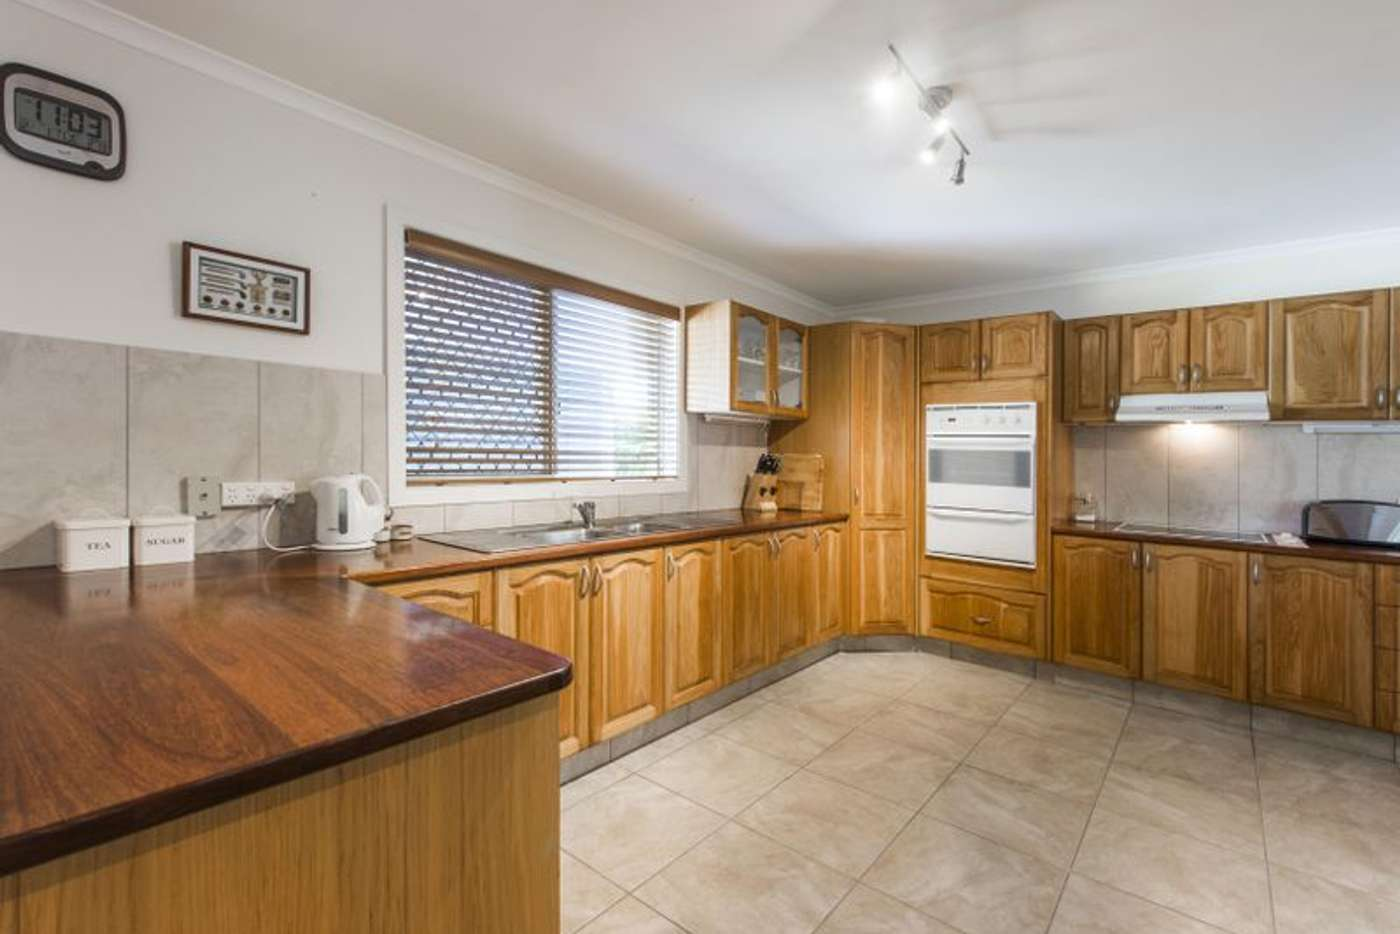 Sixth view of Homely house listing, 13 Young Street, Iluka NSW 2466